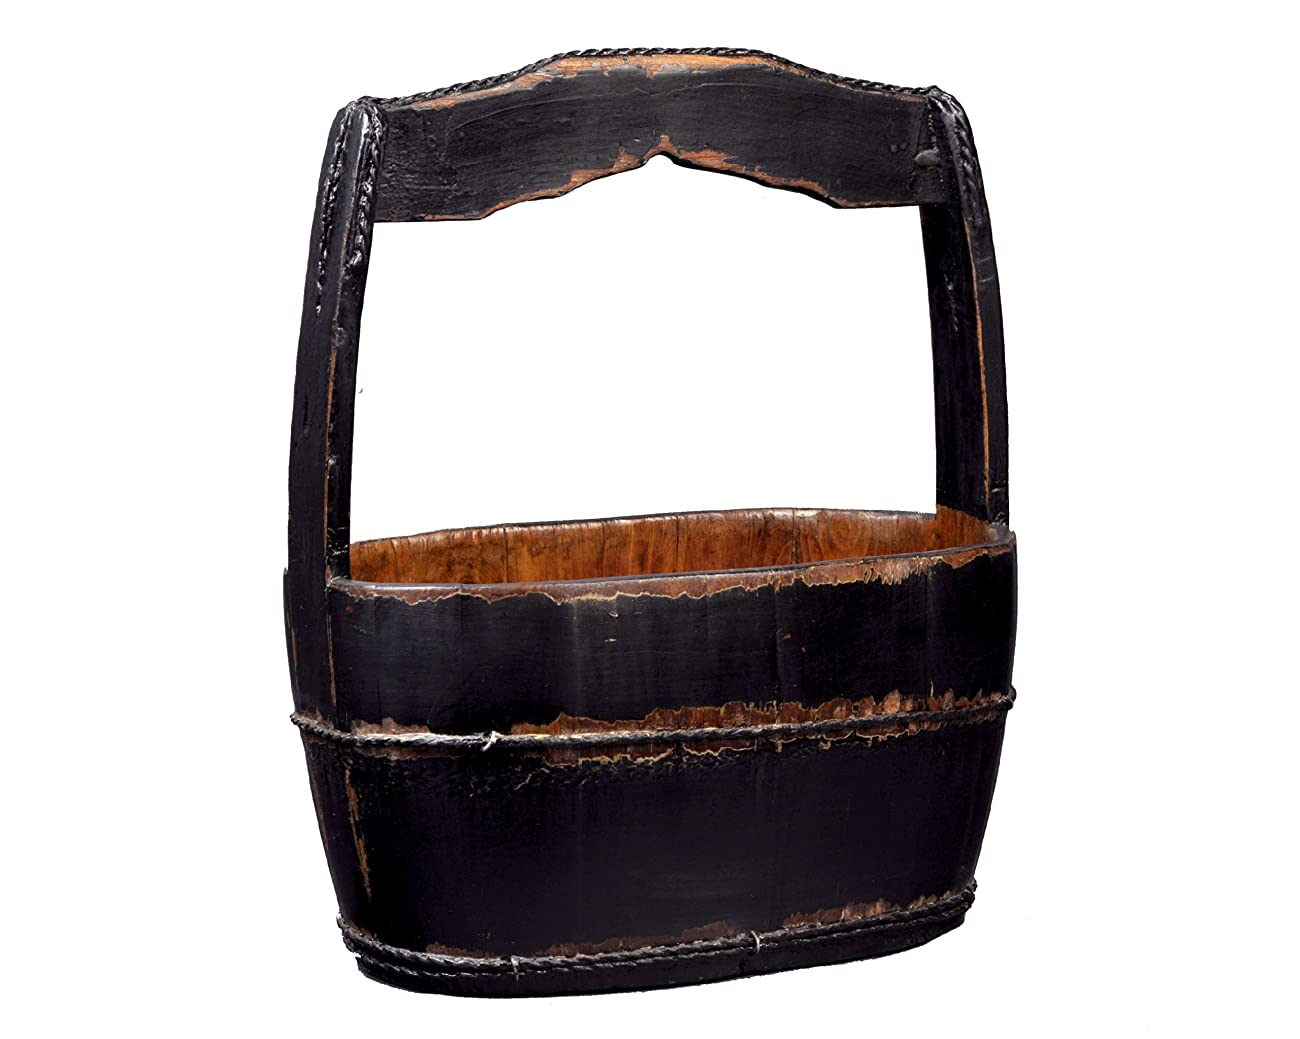 Antique Revival Shanghai-Style Water Bucket, Black 0